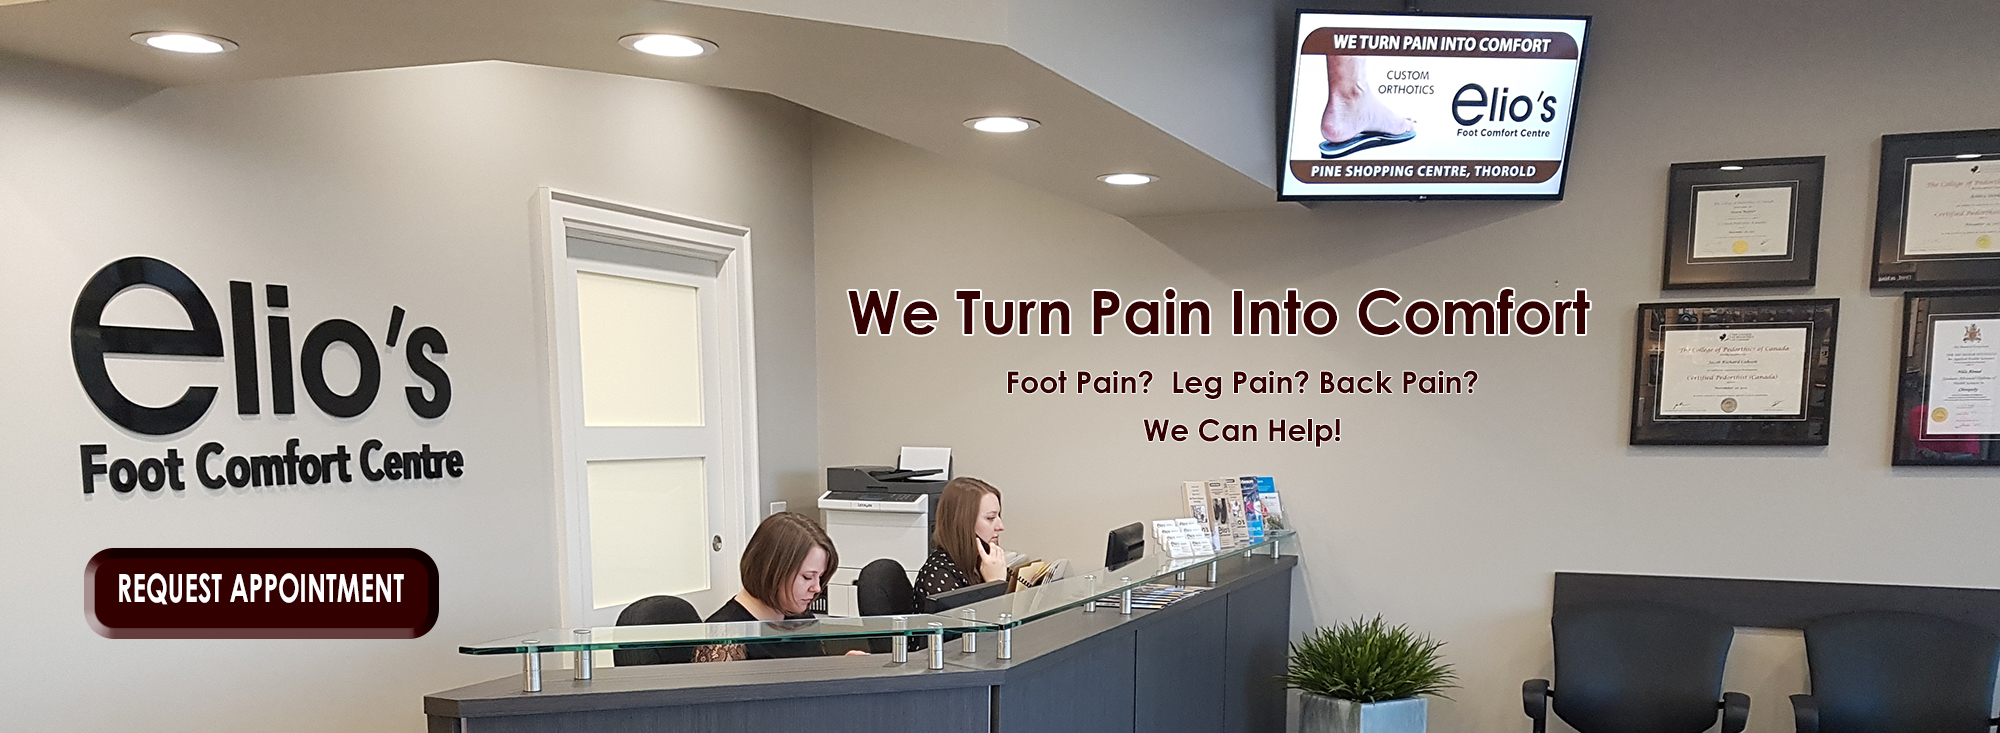 Foot pain solution by Elio's Foot Comfort Centre